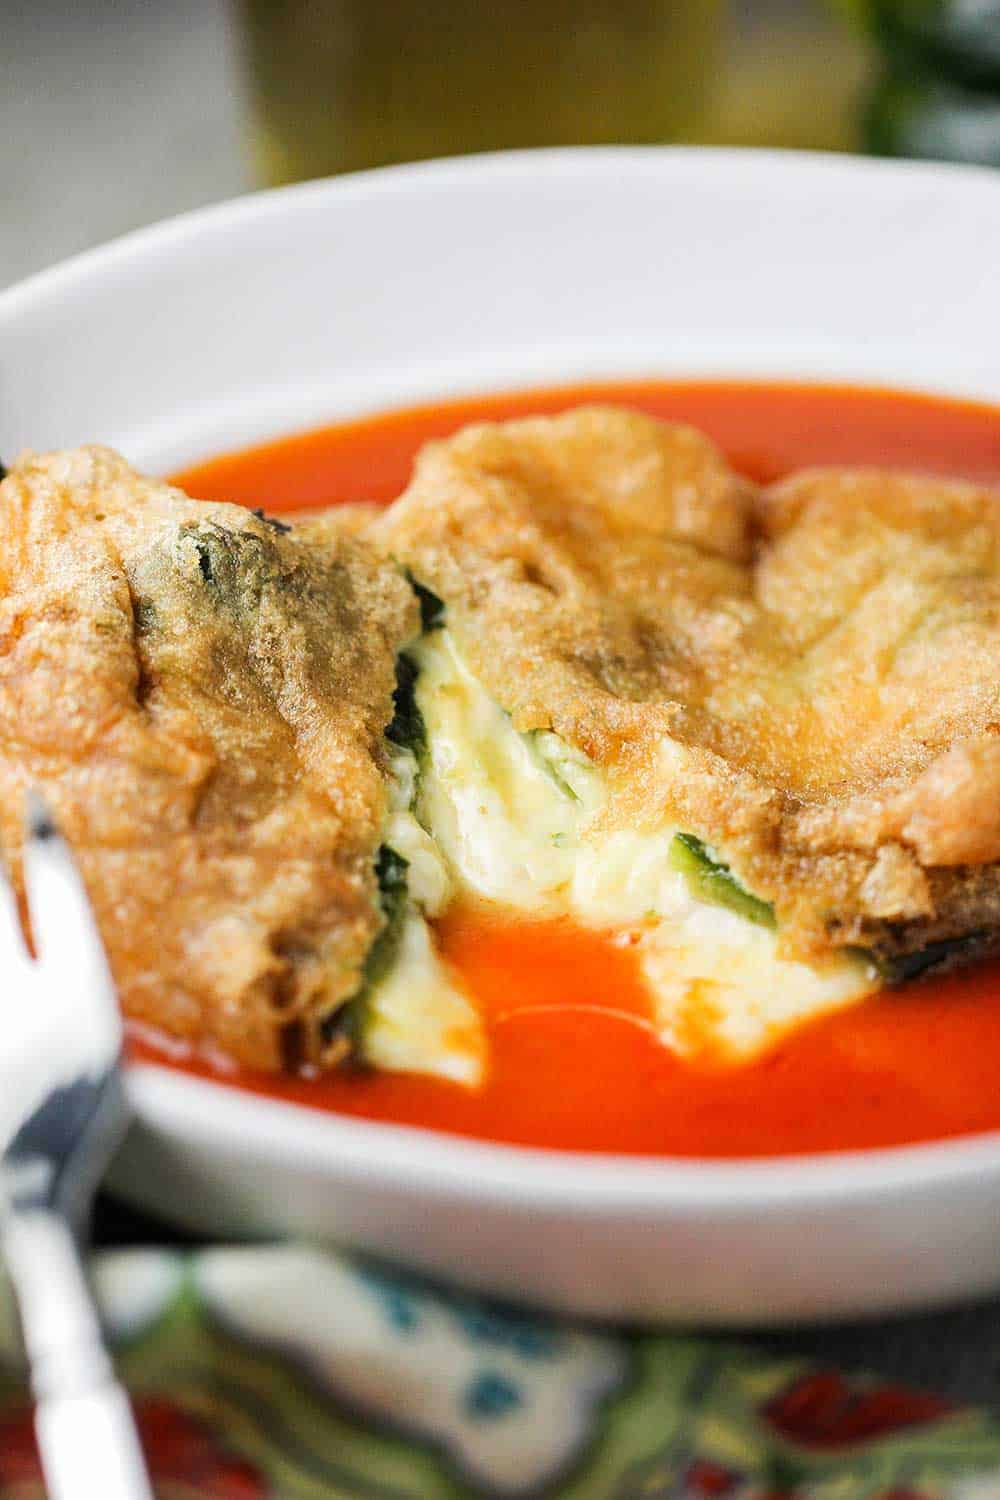 Chile rellenos that is cut in half in a white bowl.